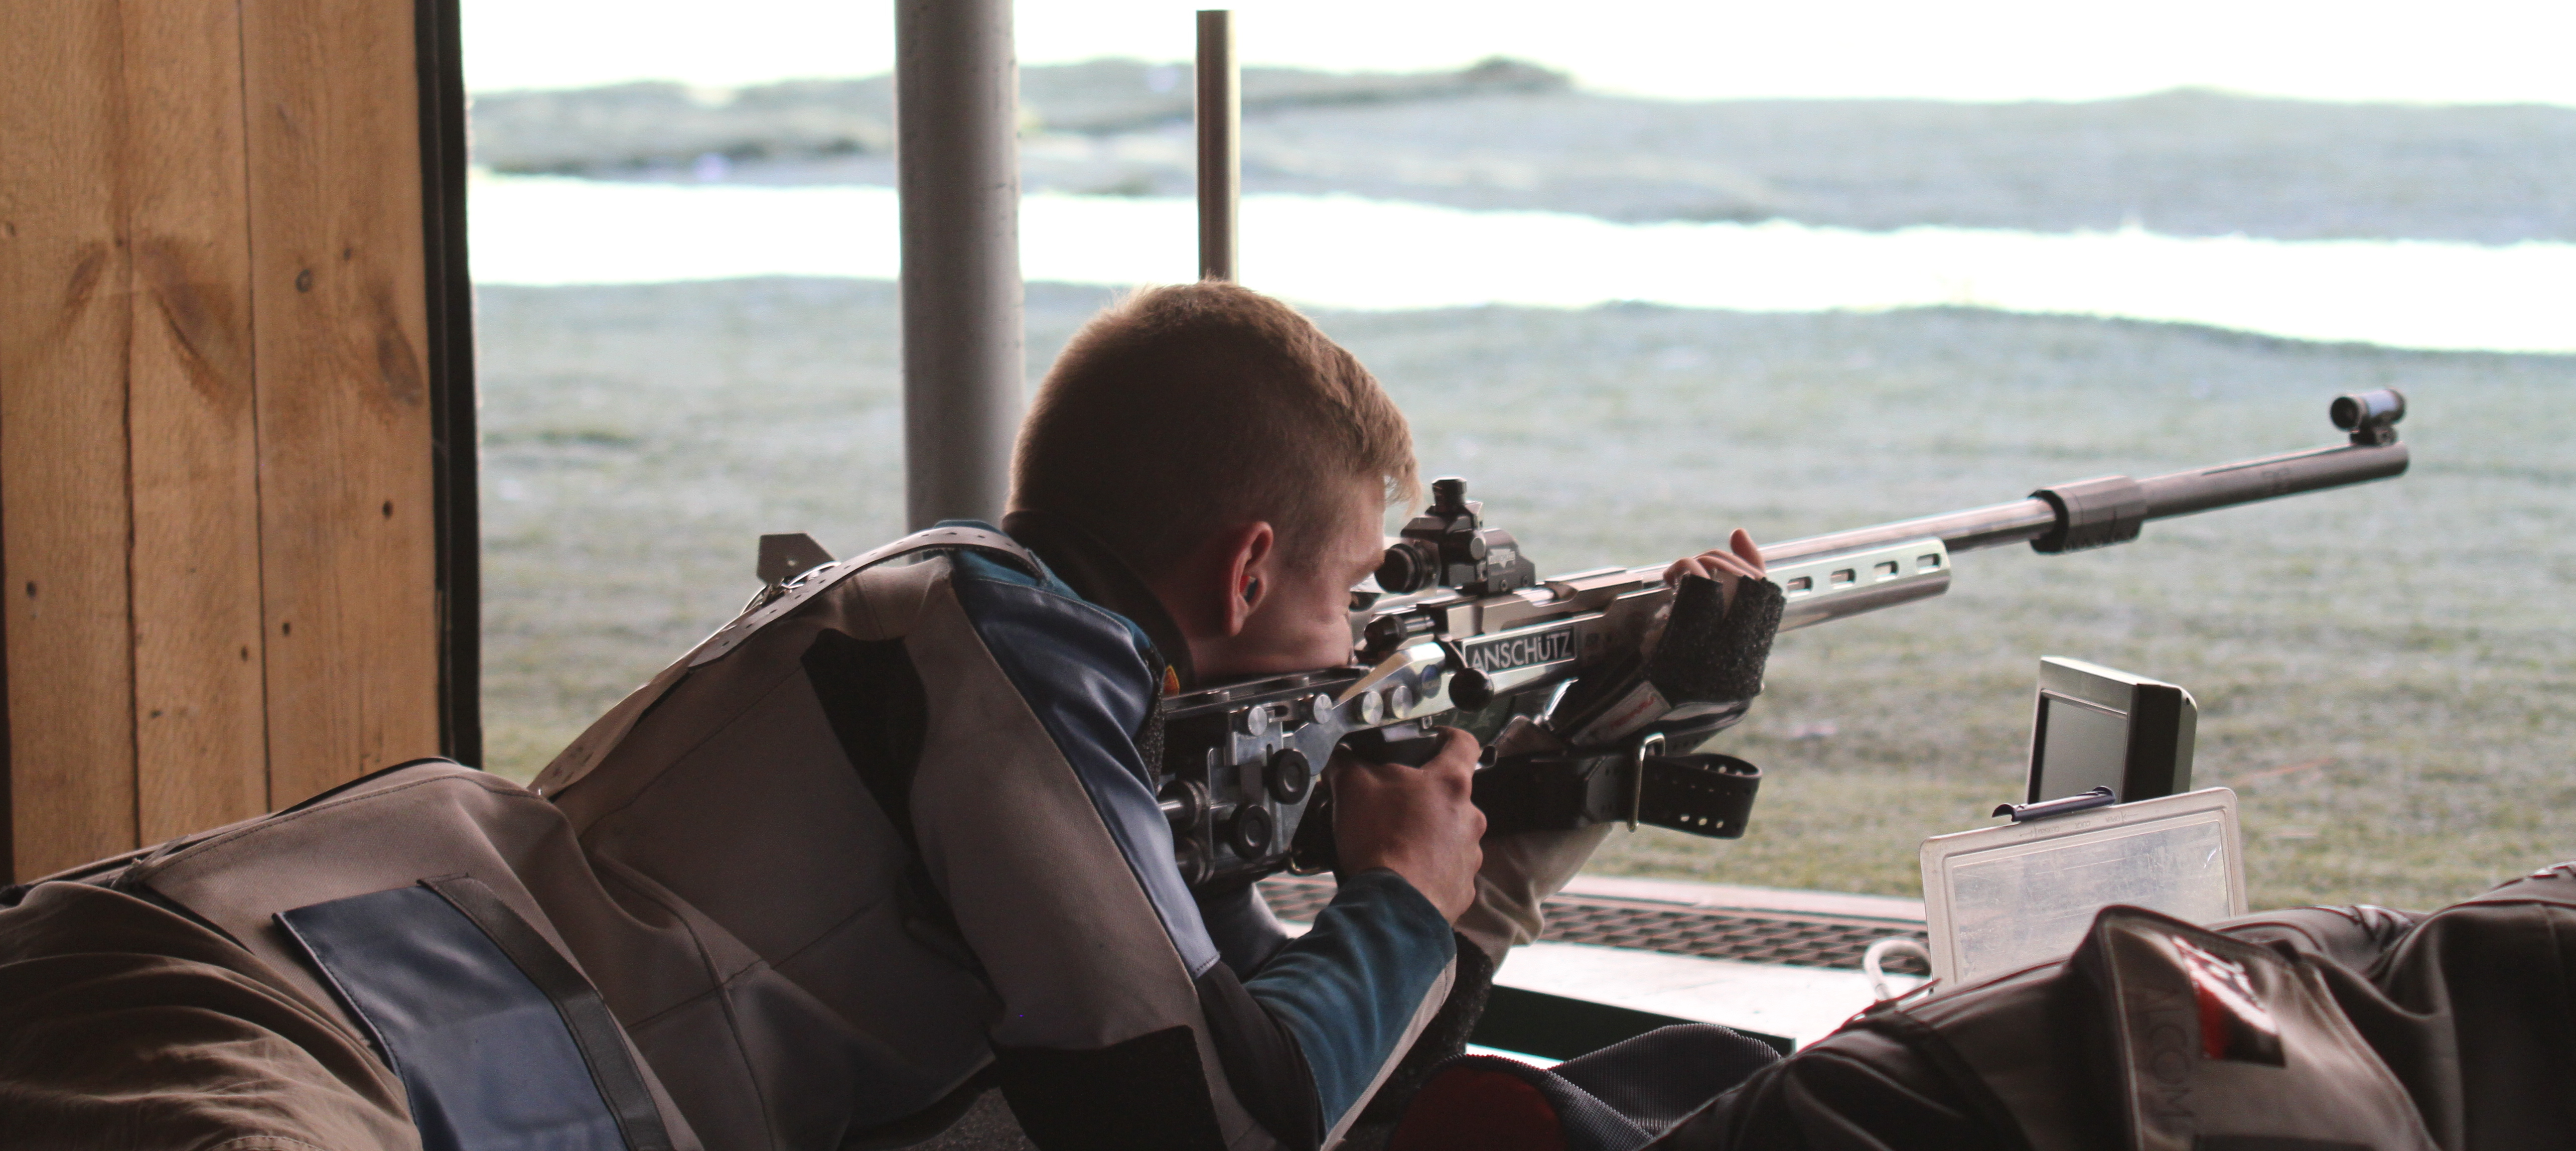 Photo: Olympic shooter David Higgins prone rifle 2